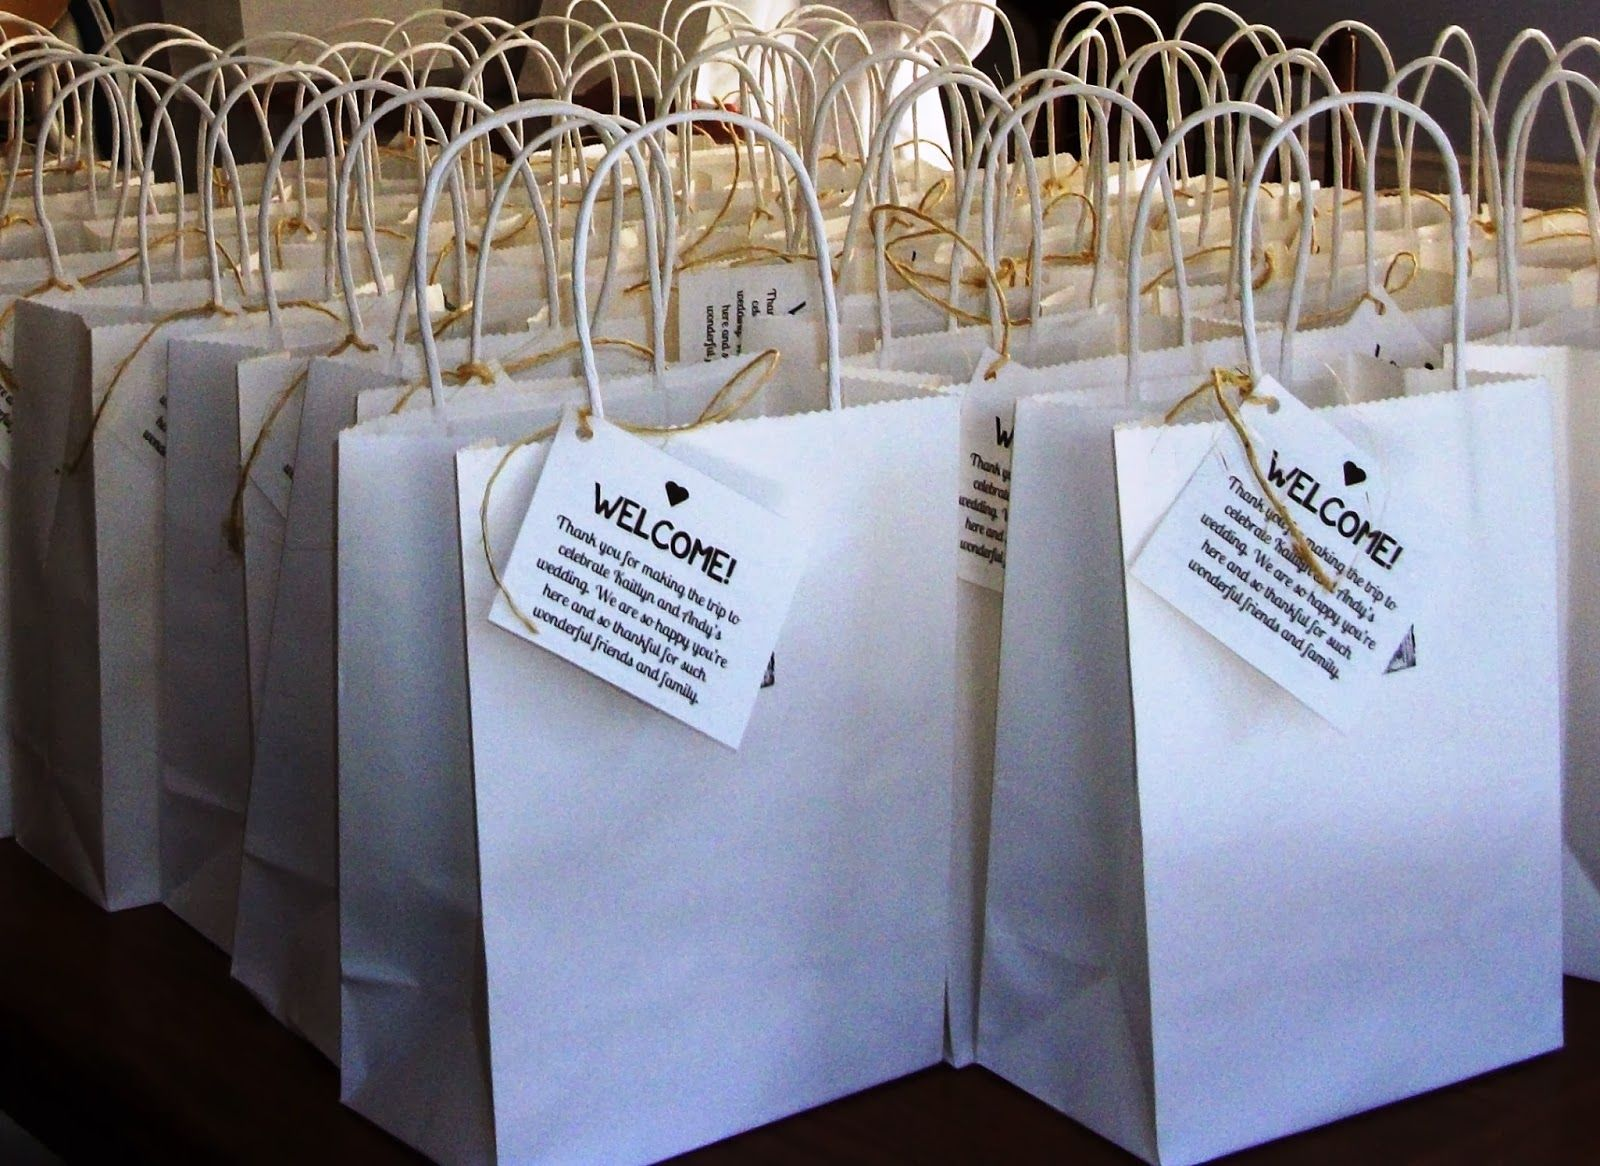 What To Put In Wedding Gift Bags: Lovely Ache: Wedding Welcome Bags For Out-of-Town Guests